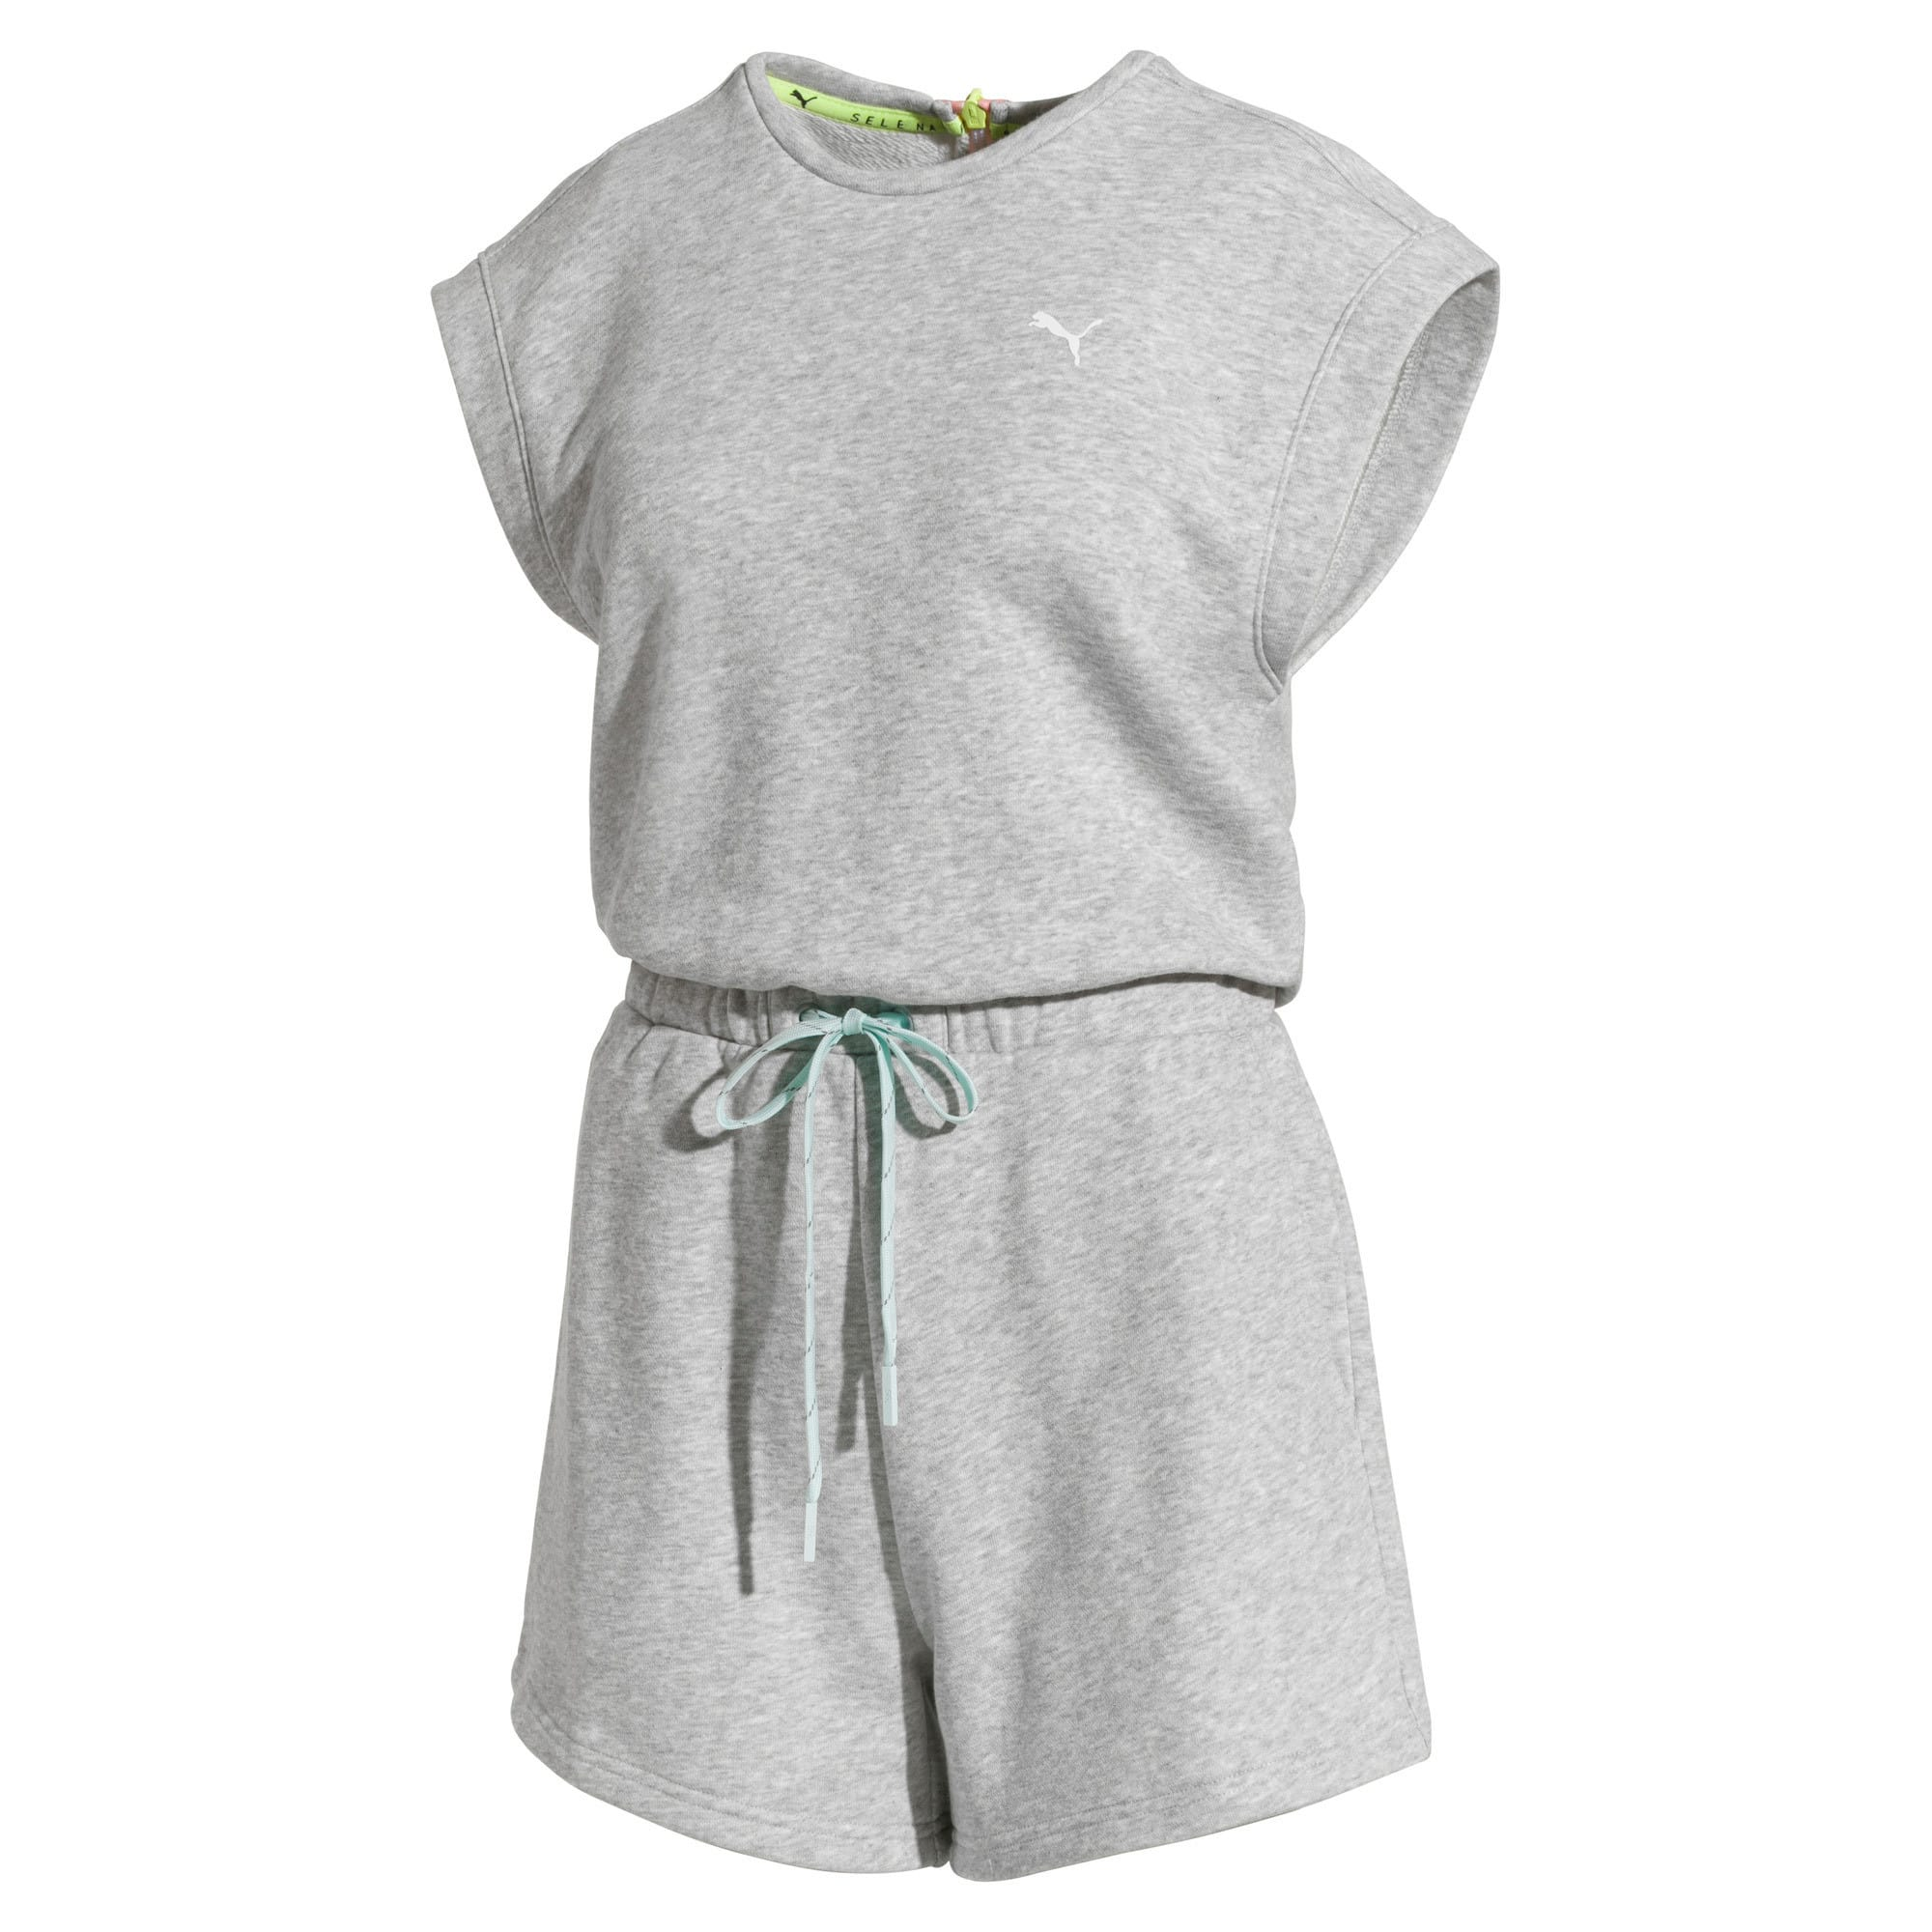 Thumbnail 4 of PUMA x SELENA GOMEZ Women's Romper, Light Gray Heather, medium